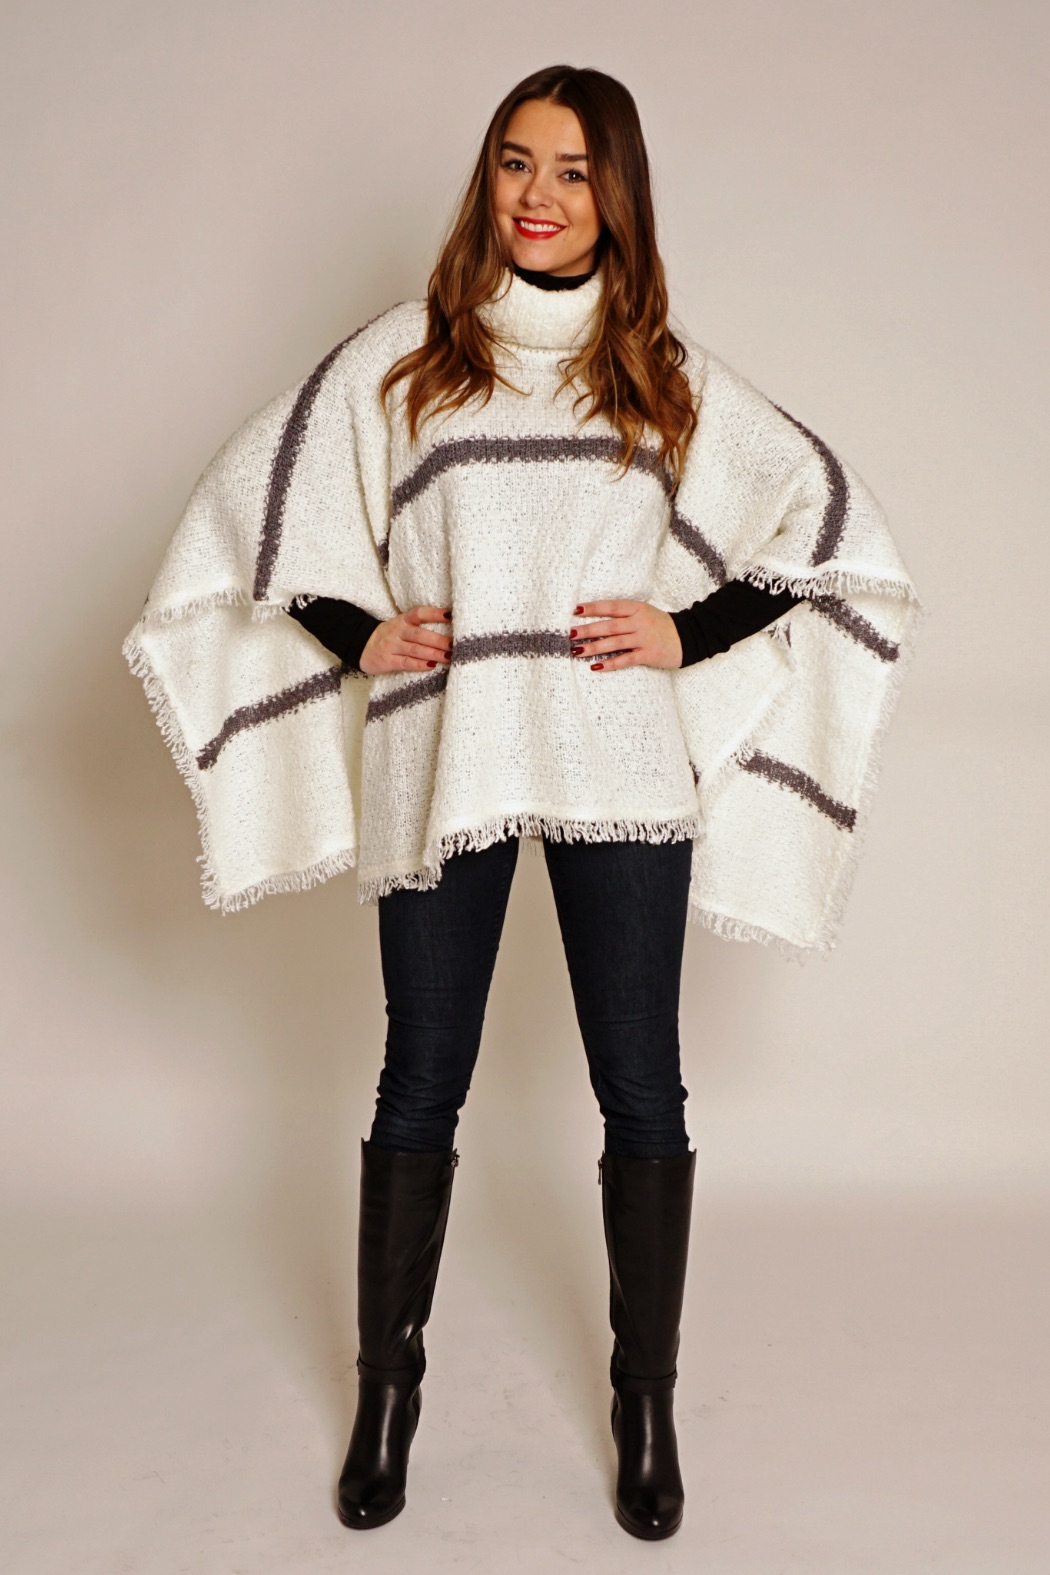 Although ponchos can appear to be an easy item to wear, it's important to choose one that fits your frame. Make sure that it is not too small or to big but that it fits your frame — otherwise you will drown in it.  Necklines such as cowl neck, turtleneck, V-neck, scoop neck, crew neck, and boat neck are great as they frame your face and upper body. While boat necks and crew necks tend to make the chest and shoulders look wider, they are perfect if you have narrow shoulders or a small bust. V-necks are especially good for women with broad shoulders or a large bust, as they have a slimming effect. If you have a longer neck, go for a turtleneck that has a shortening effect through the neck and face.  If you want to elongate your frame, opt for a ponchos that falls no lower than just above your knee.Petite ladies should be aware of long ponchos as they will overwhelm your shorter stature.The fine knit triangle-shaped poncho, in a shorter length, is perfect for smaller frames.